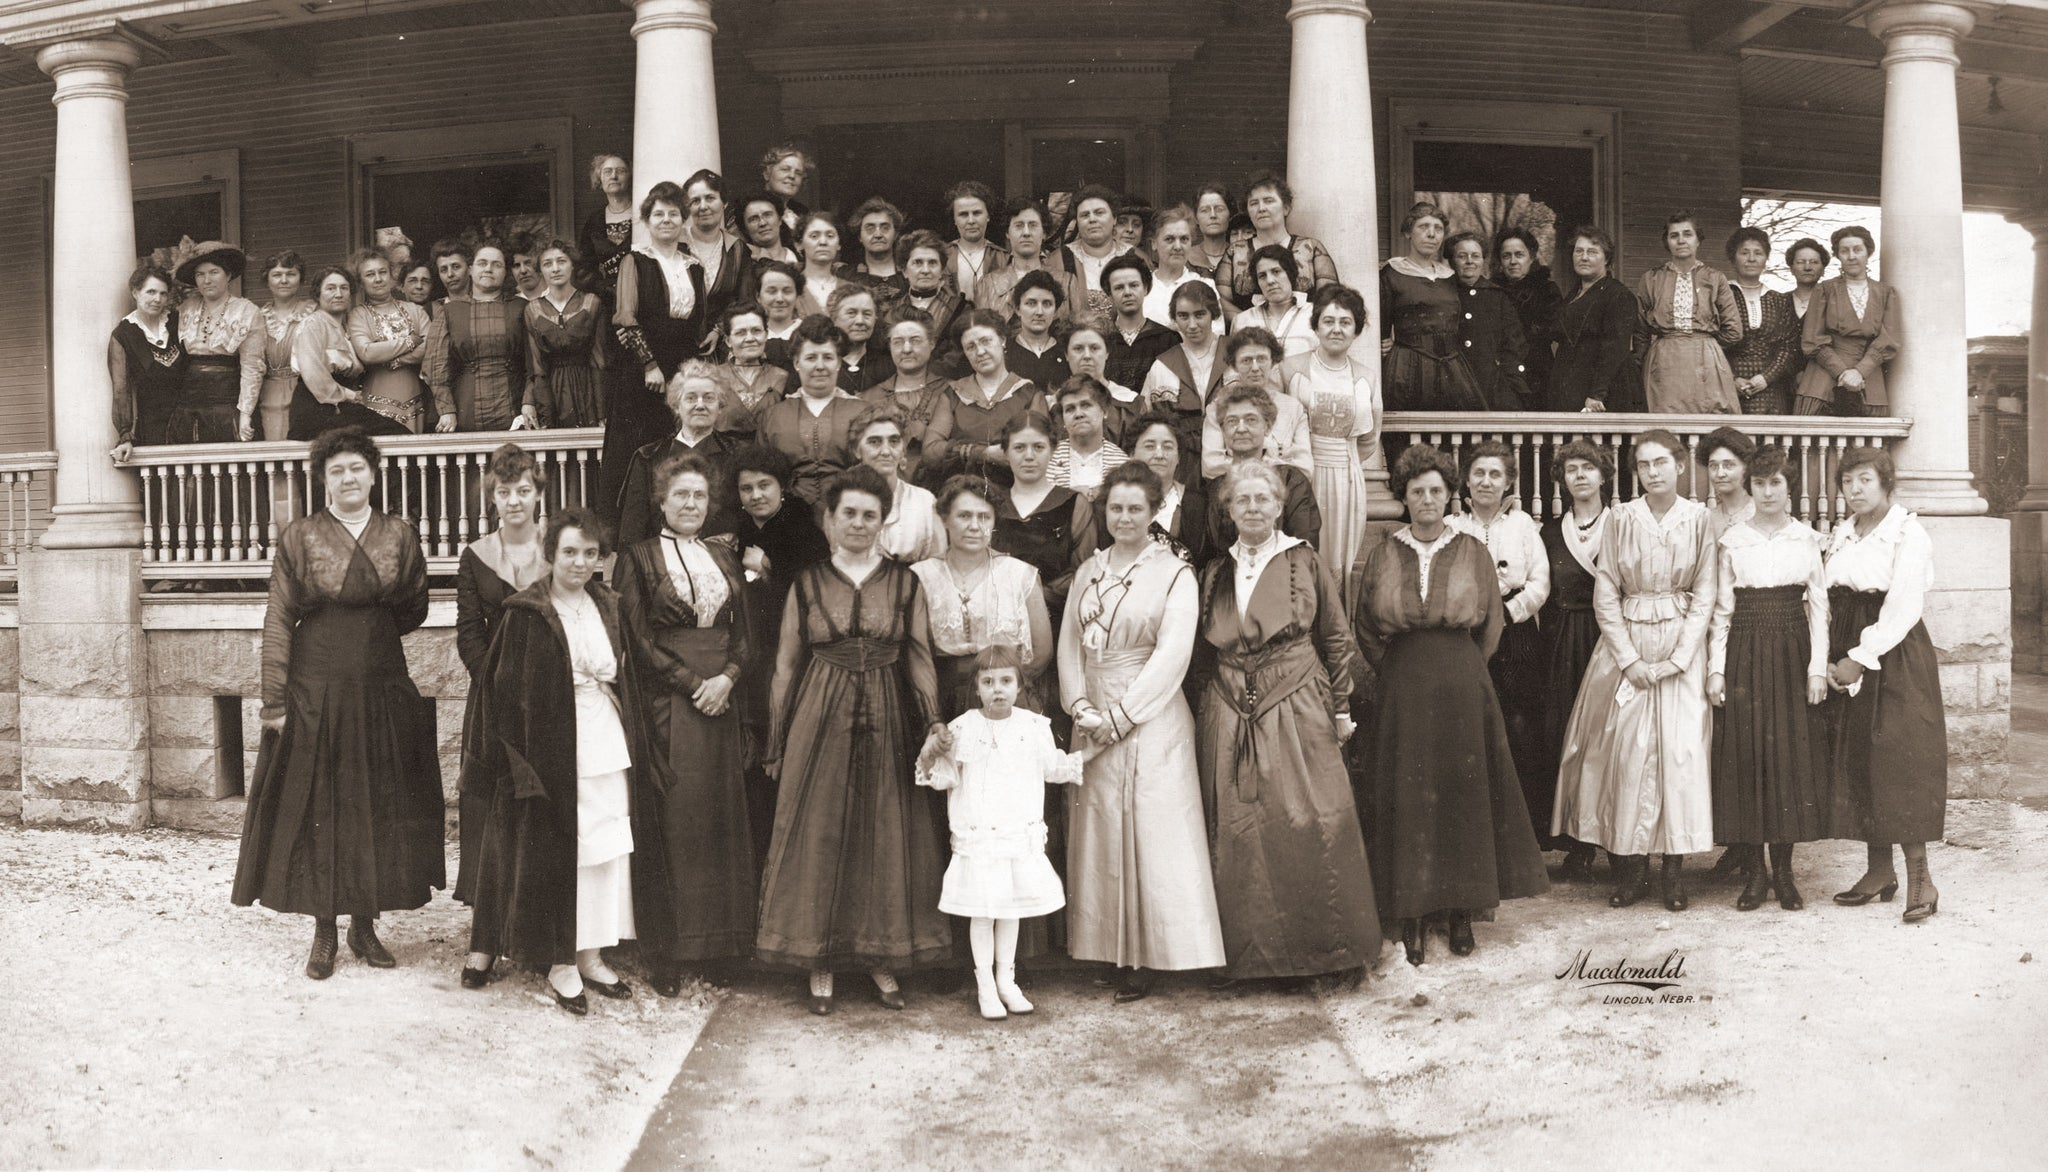 Nebraska Legislative Ladies League in front of the Governor's mansion, Lincoln, 1917. Gov. Keith Neville was Governor from 1917 to 1919. In this photo, Mrs. Neville was taking over as honorary president from Mrs. Morehead. The little girl in front is Mary Nelson Neville. -- Courtesy Nebraska State Historical Society